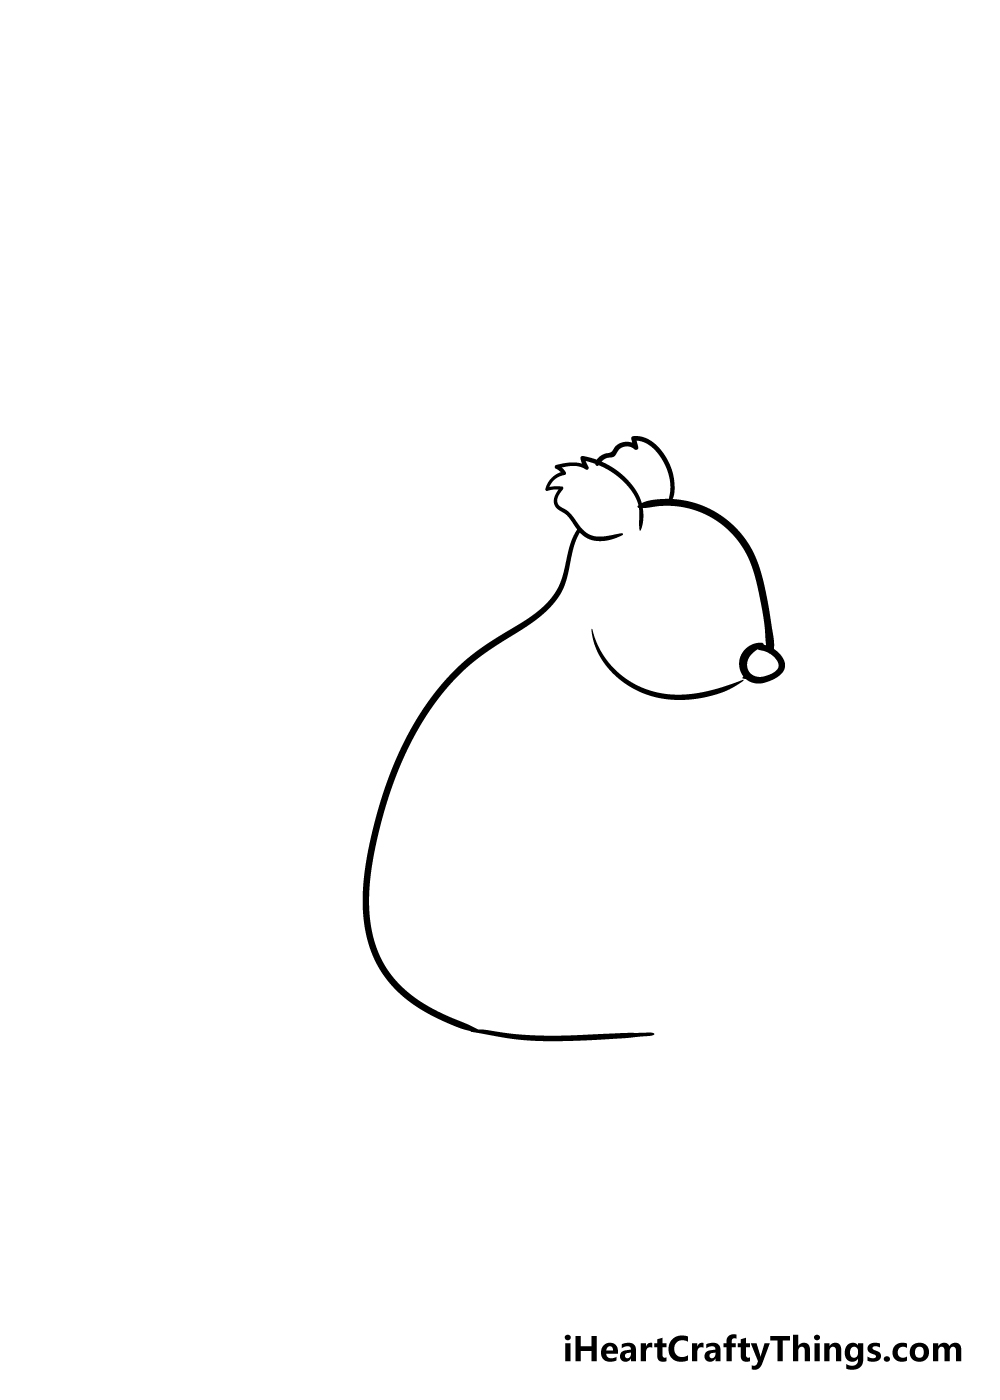 squirrel drawing step 2